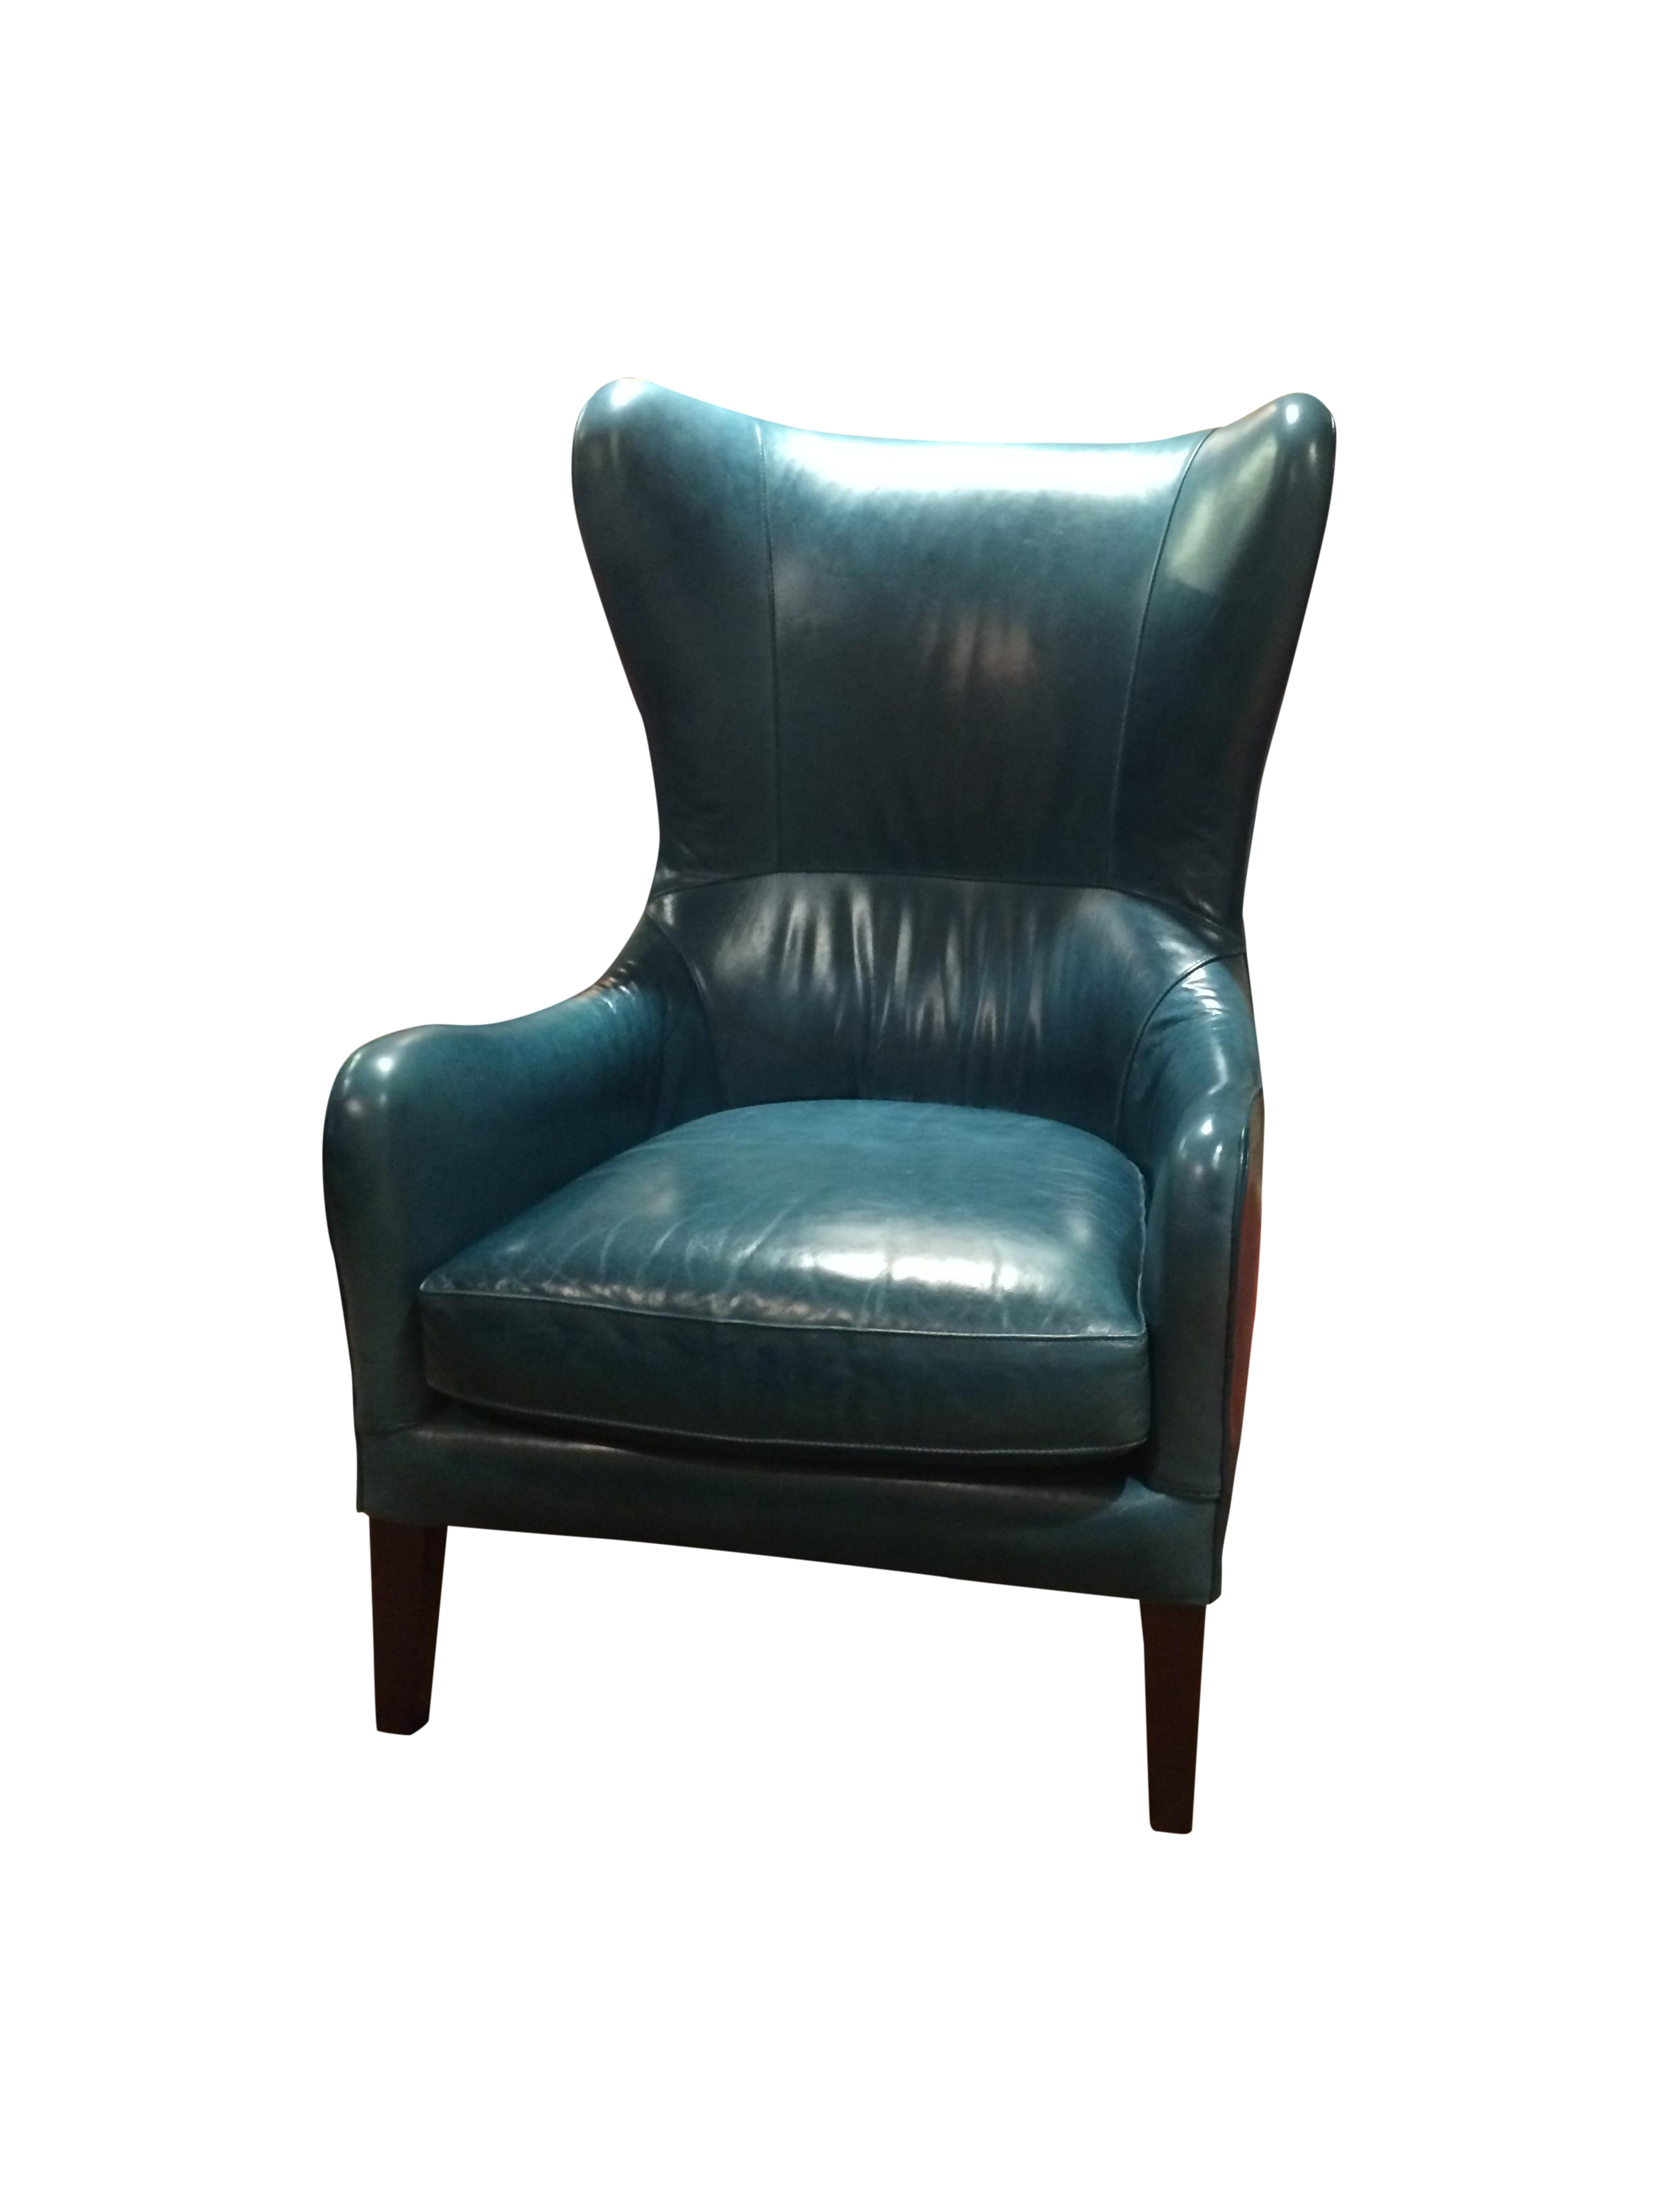 Crate barrel teal garbo leather wingback chair chairish for Small teal chair